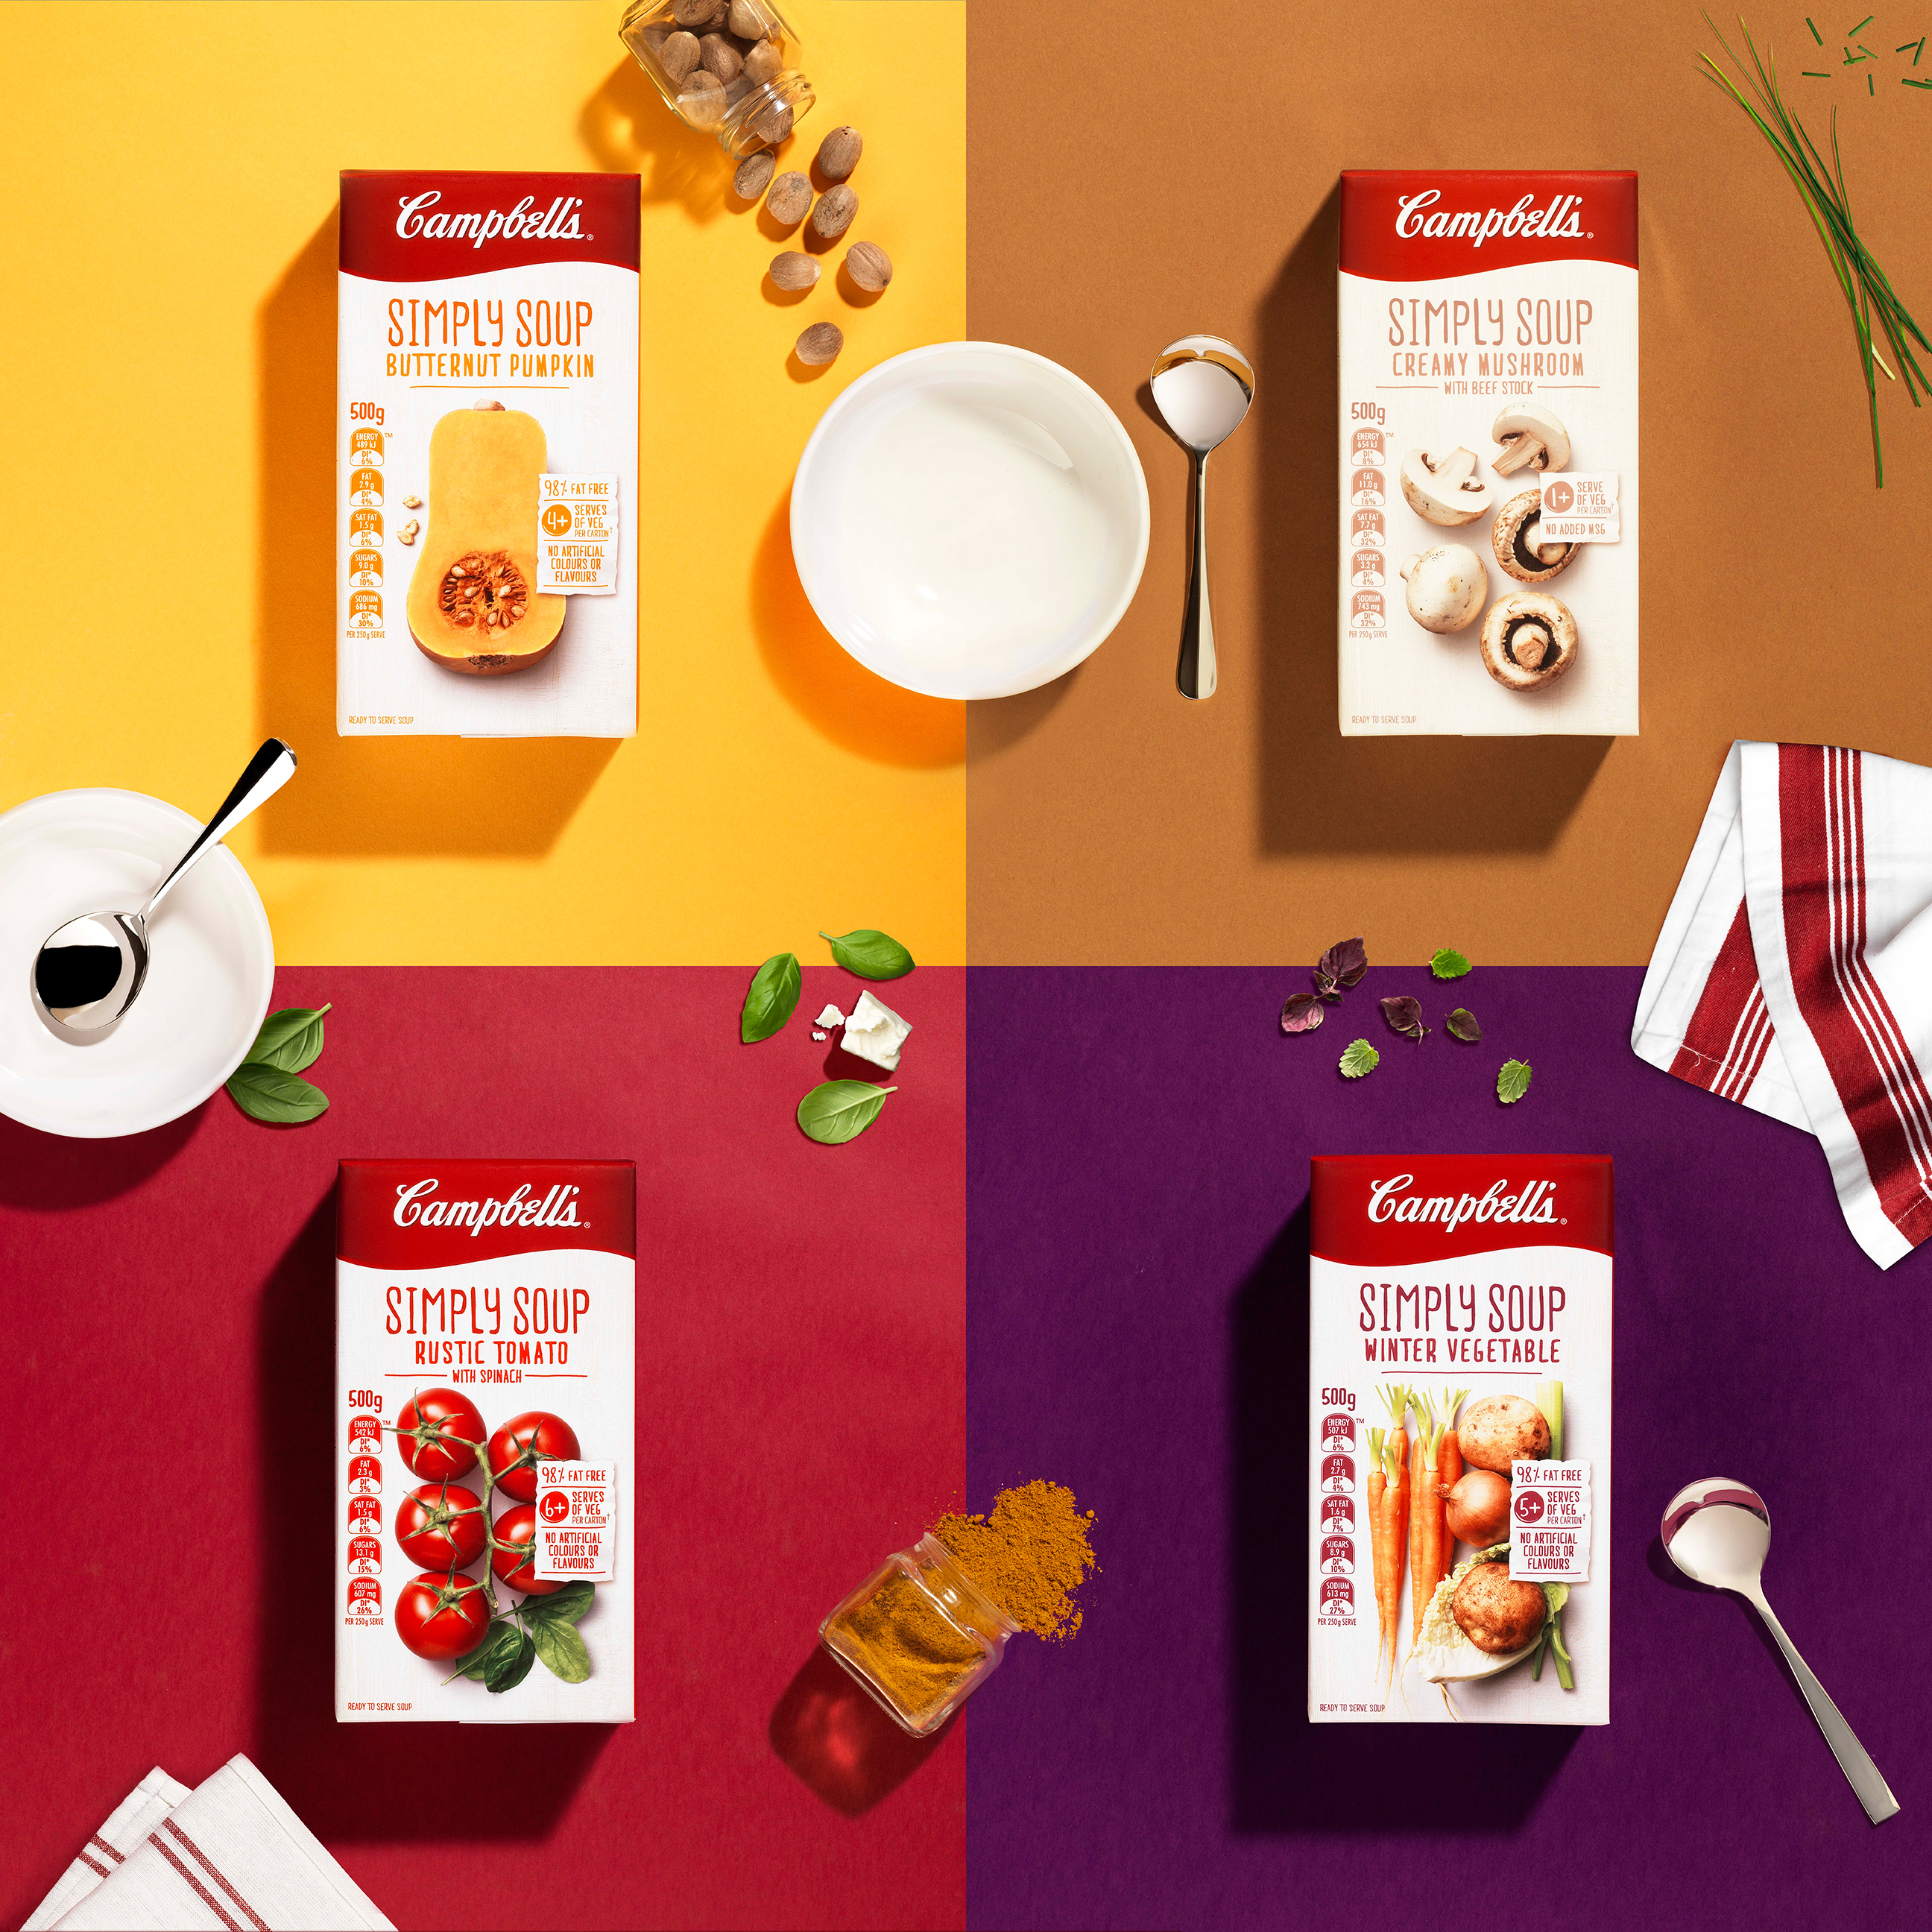 Energi Packaging Design Campbells Simply Soup Butternut Pumpkin Creamy Mushroom Rustic Tomato Winter Vegetable Tetra Pack Product Photography